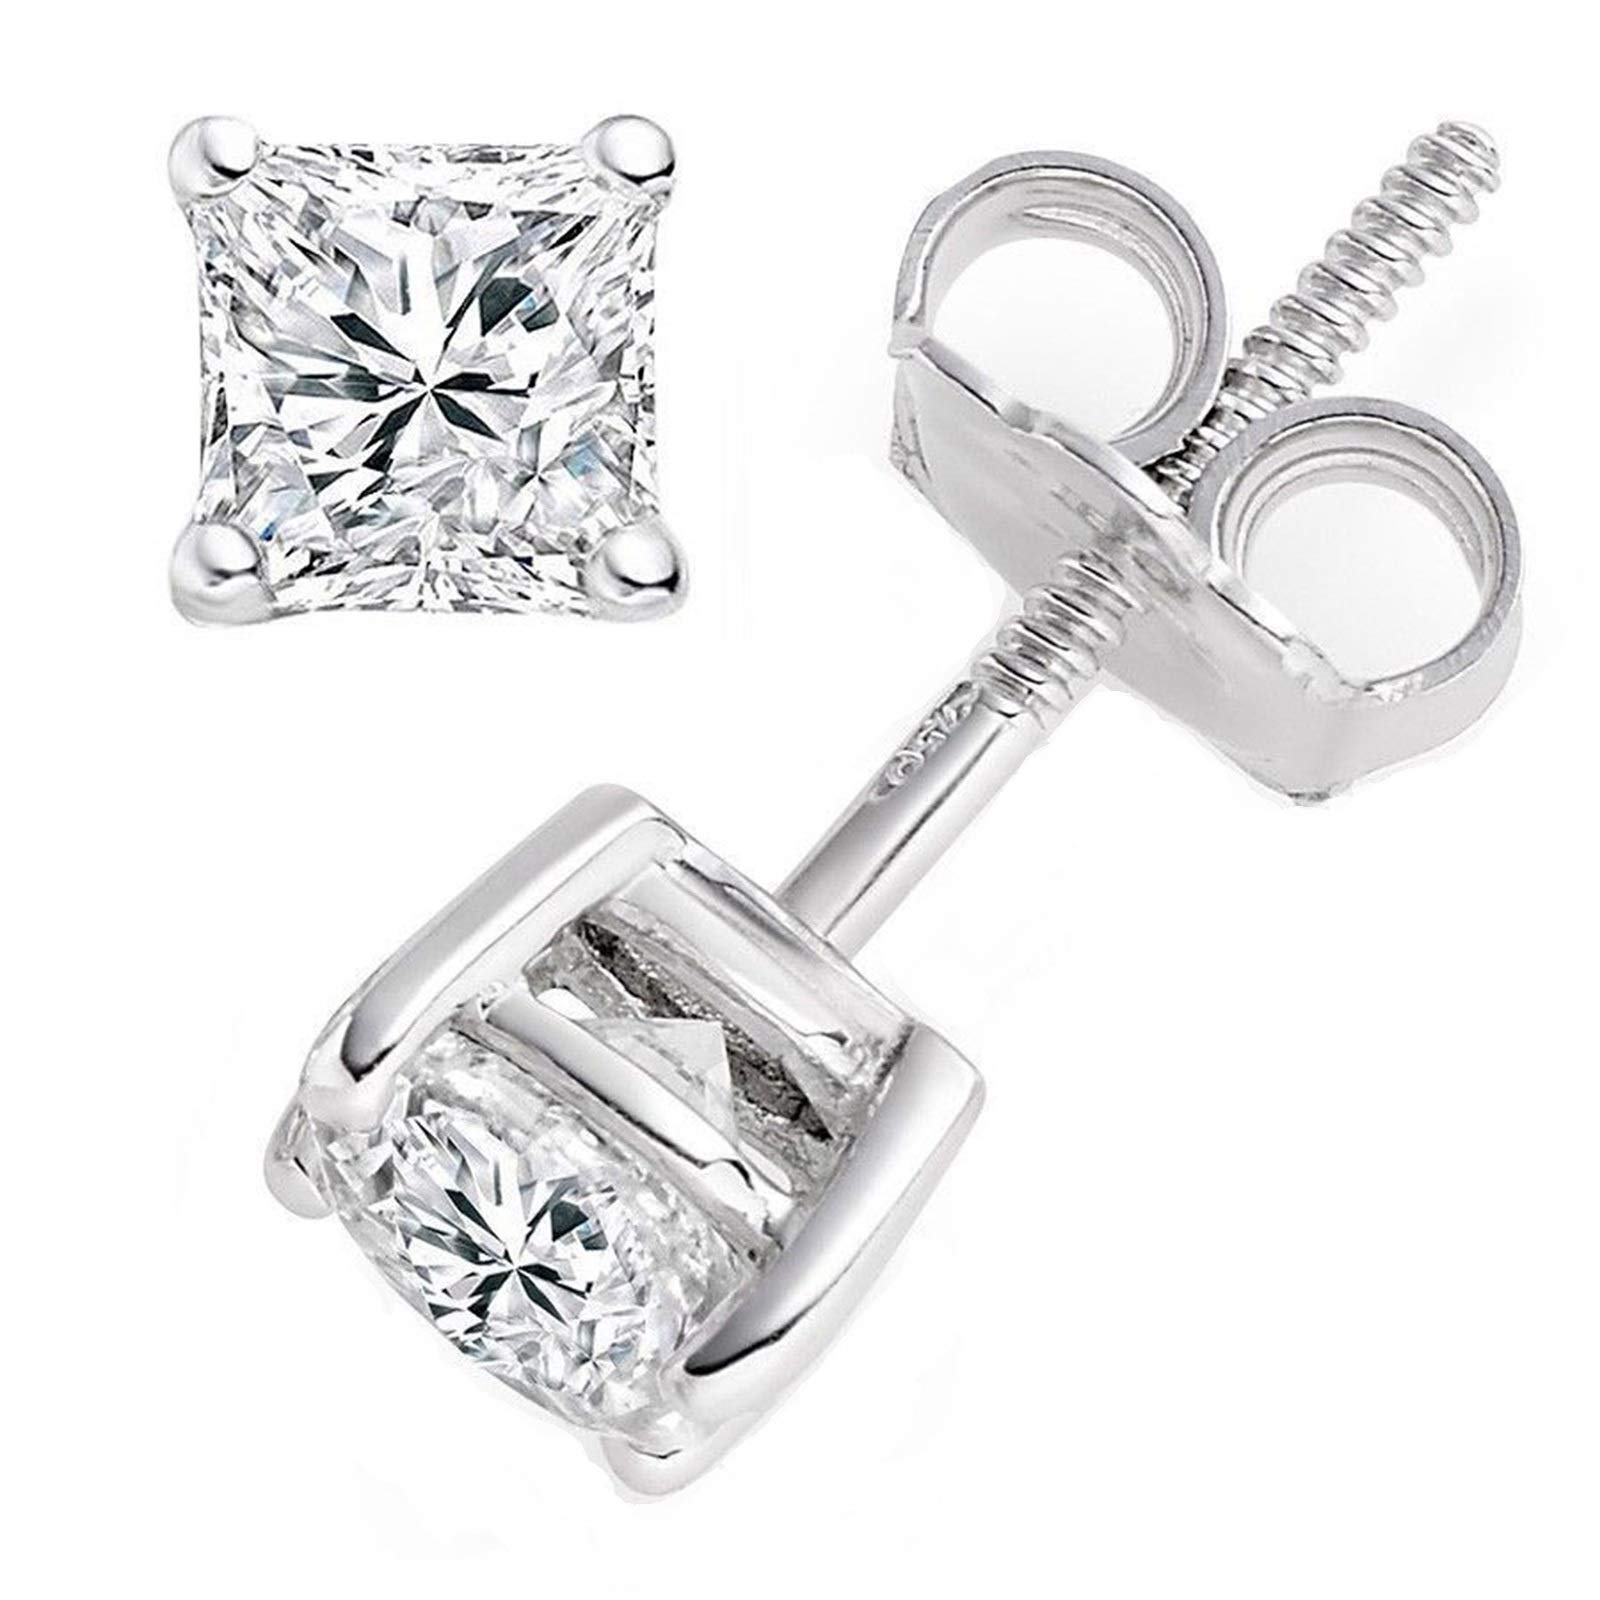 1.0 ct Brilliant Princess Cut Solitaire Highest Quality Moissanite Anniversary gift Stud Earrings Real Solid 14k White Gold Screw Back